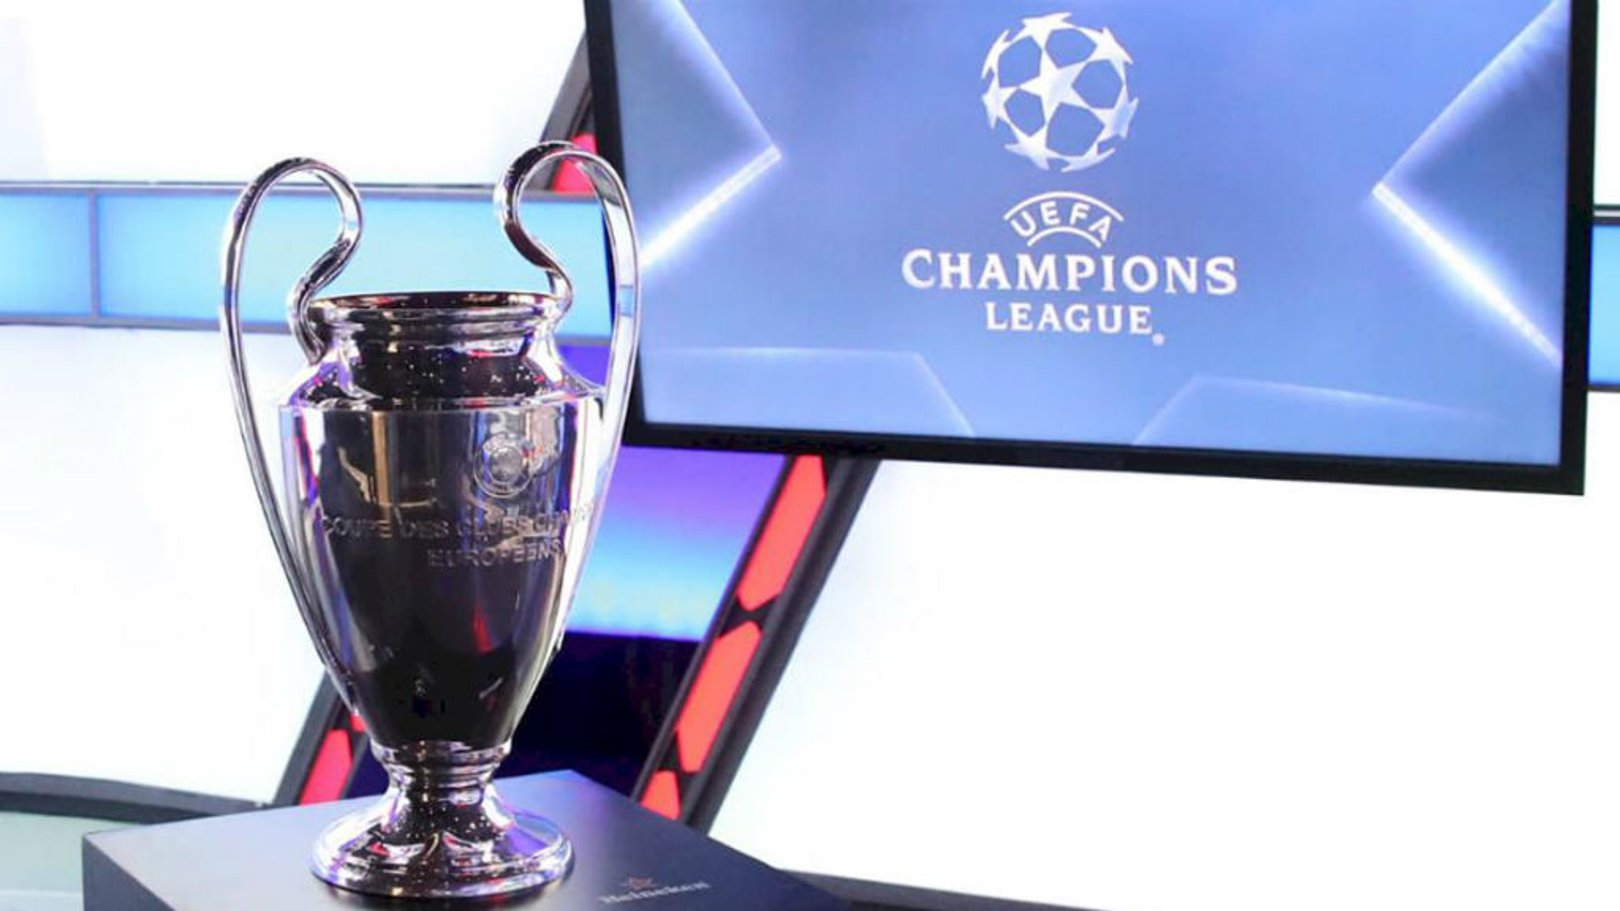 When and where is the Champions League draw?